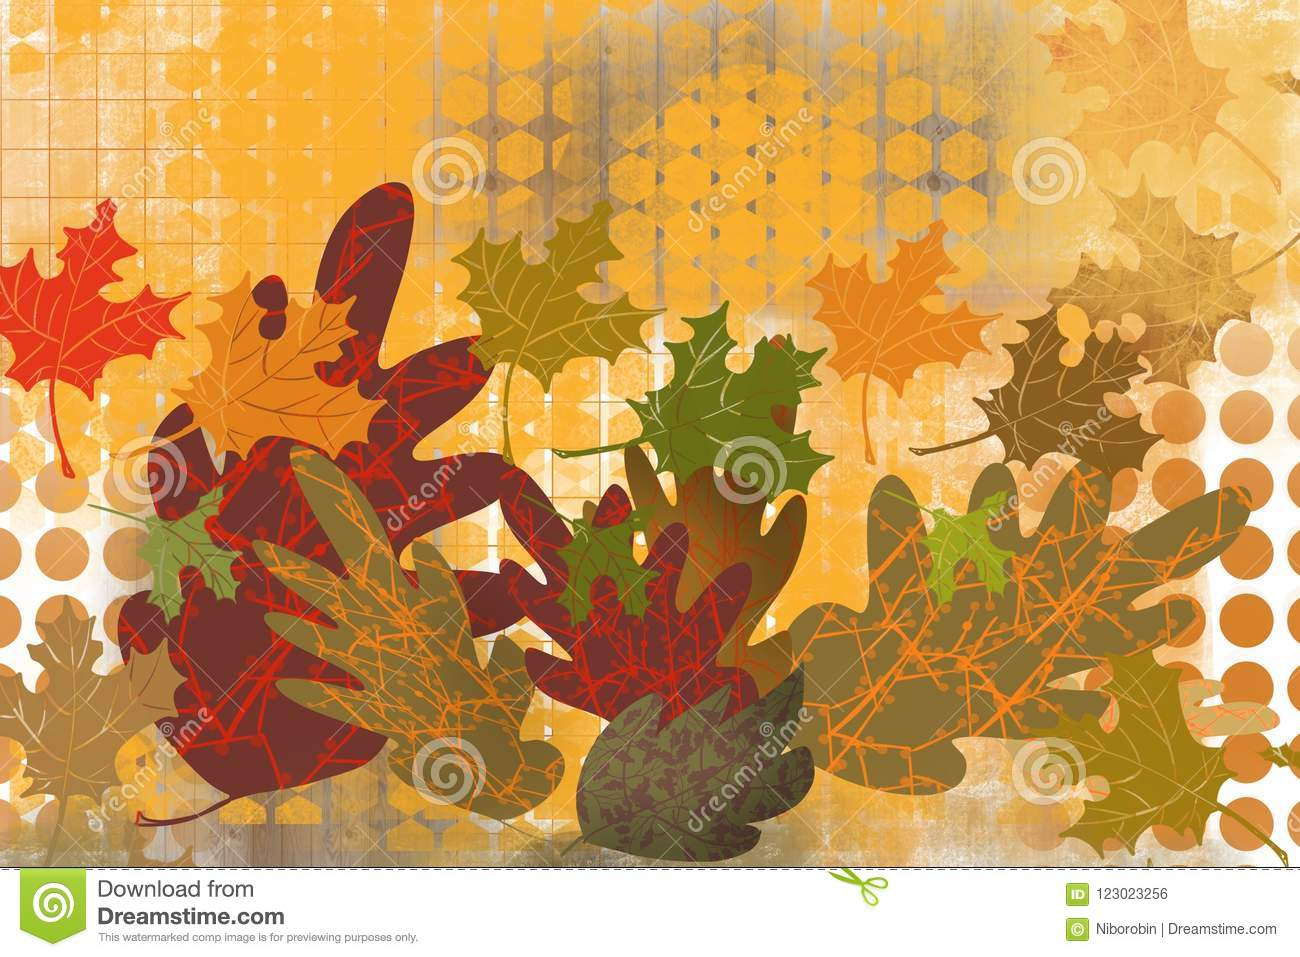 Abstract Grid Background With Artistic Layers Of Hand